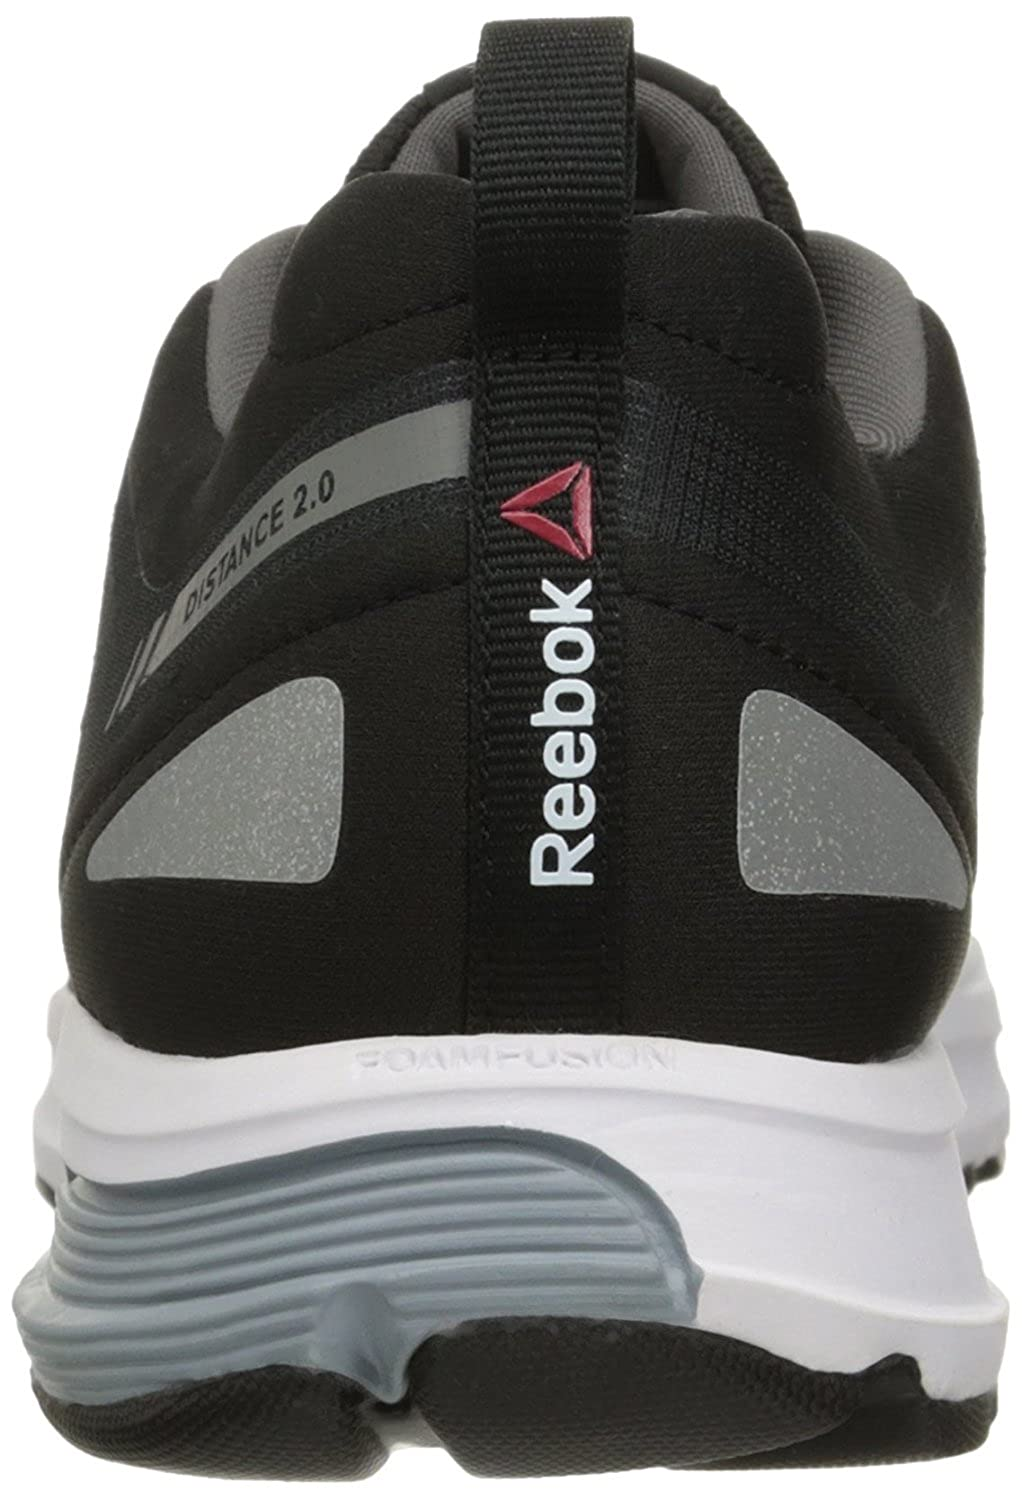 Reebok Men s One Distance 2.0 Running Shoe  Buy Online at Low Prices in  India ... 4e76bc0b4